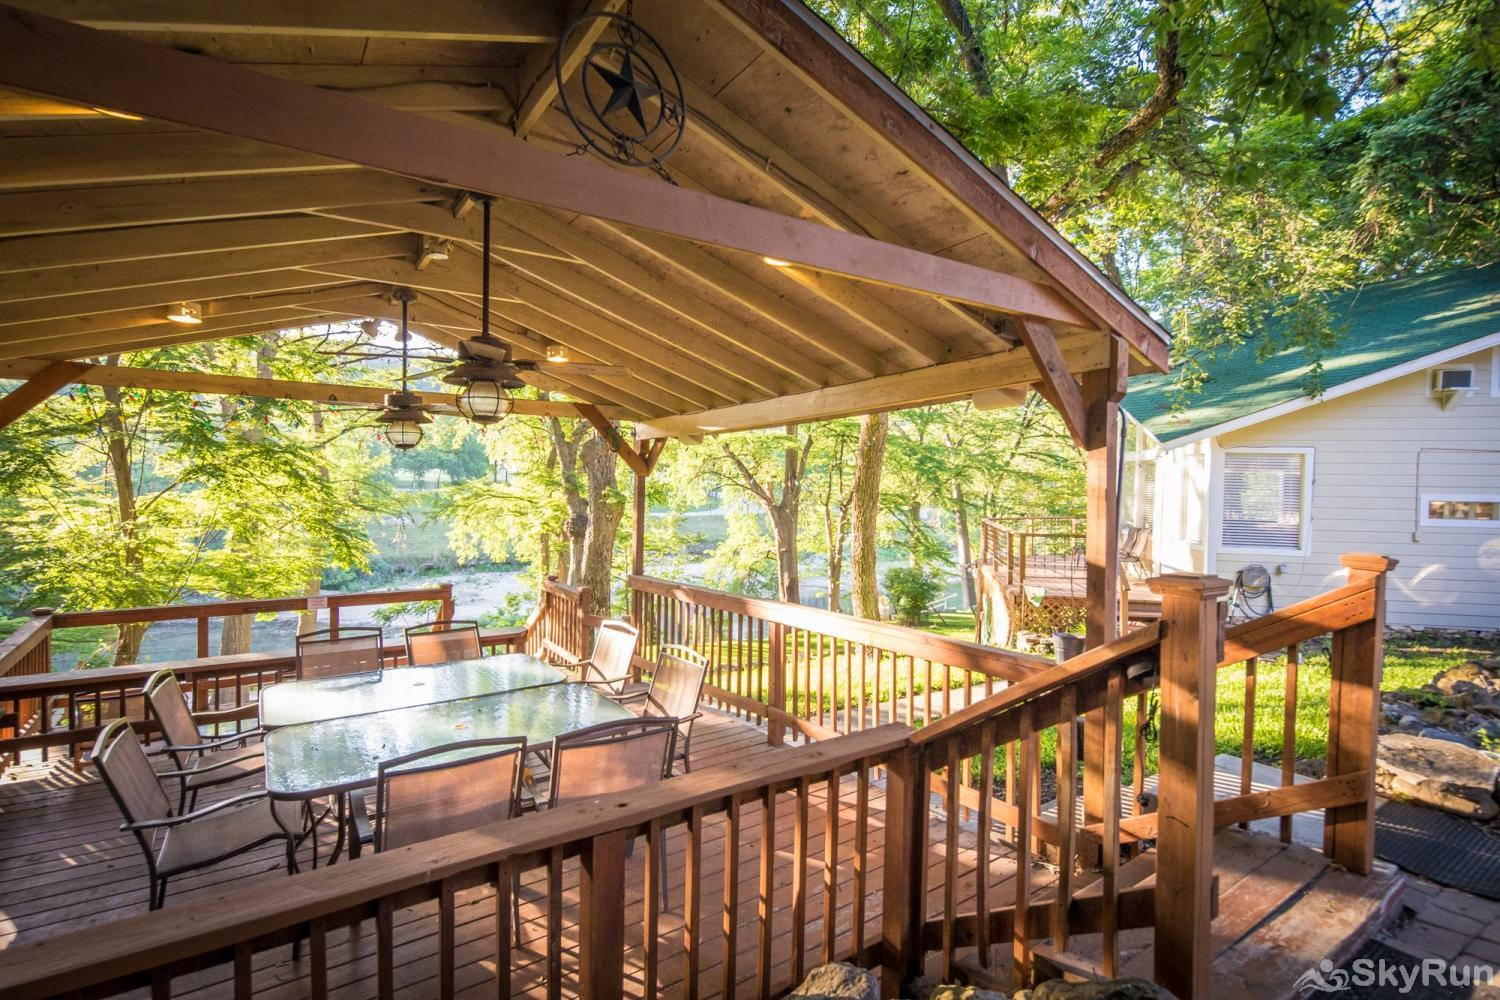 STAR OF TEXAS AND COTTAGE COMBO Shaded Gazebo Overlooking the River Below